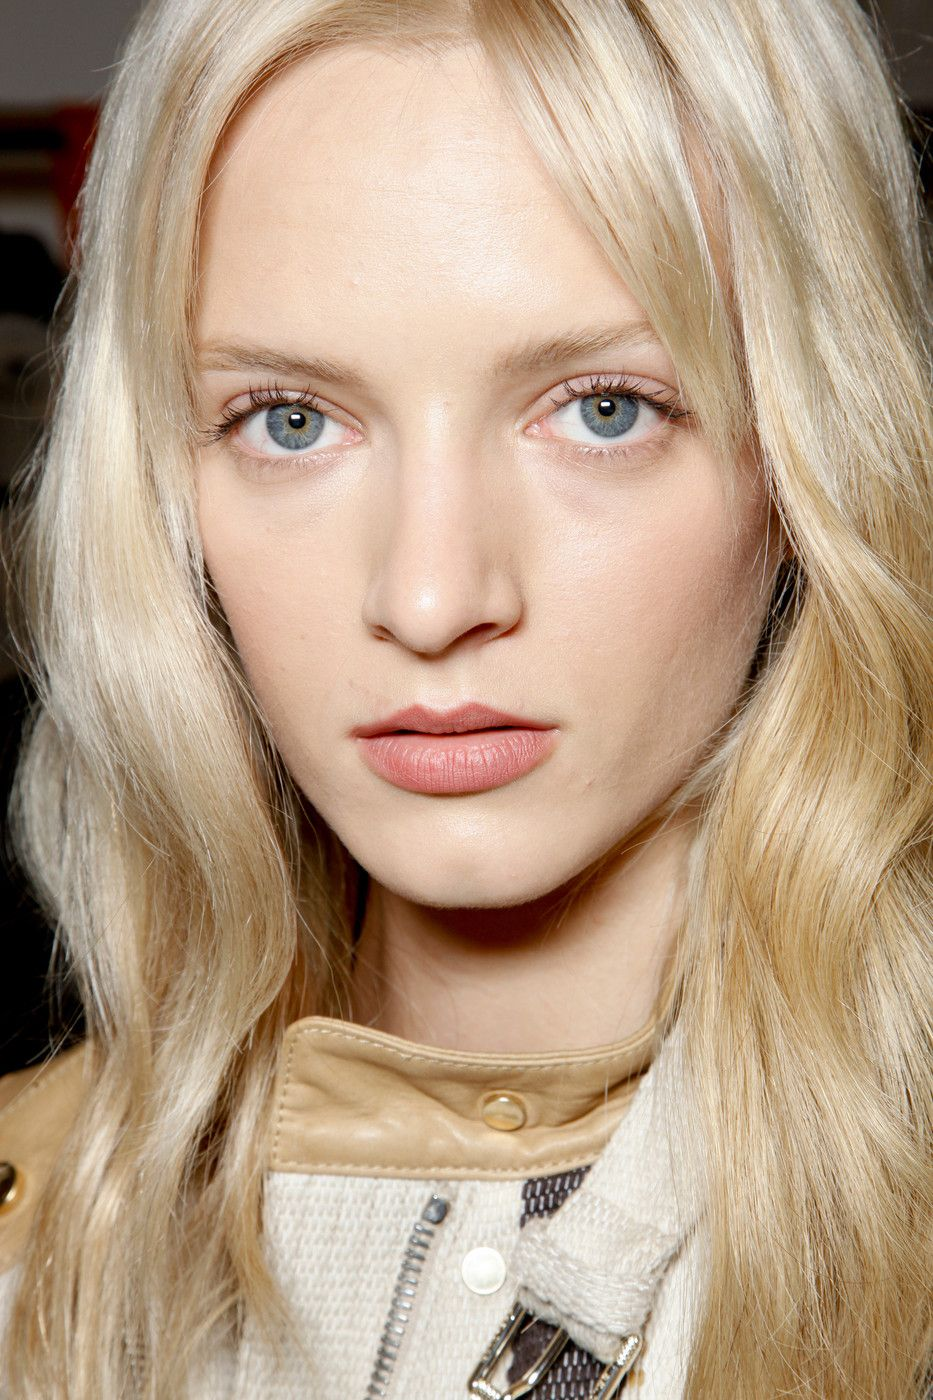 1f2961079570edc662fb98b7fecc0468 daria strokous belstaff backstage beauty s s 13 pinterest  at gsmx.co